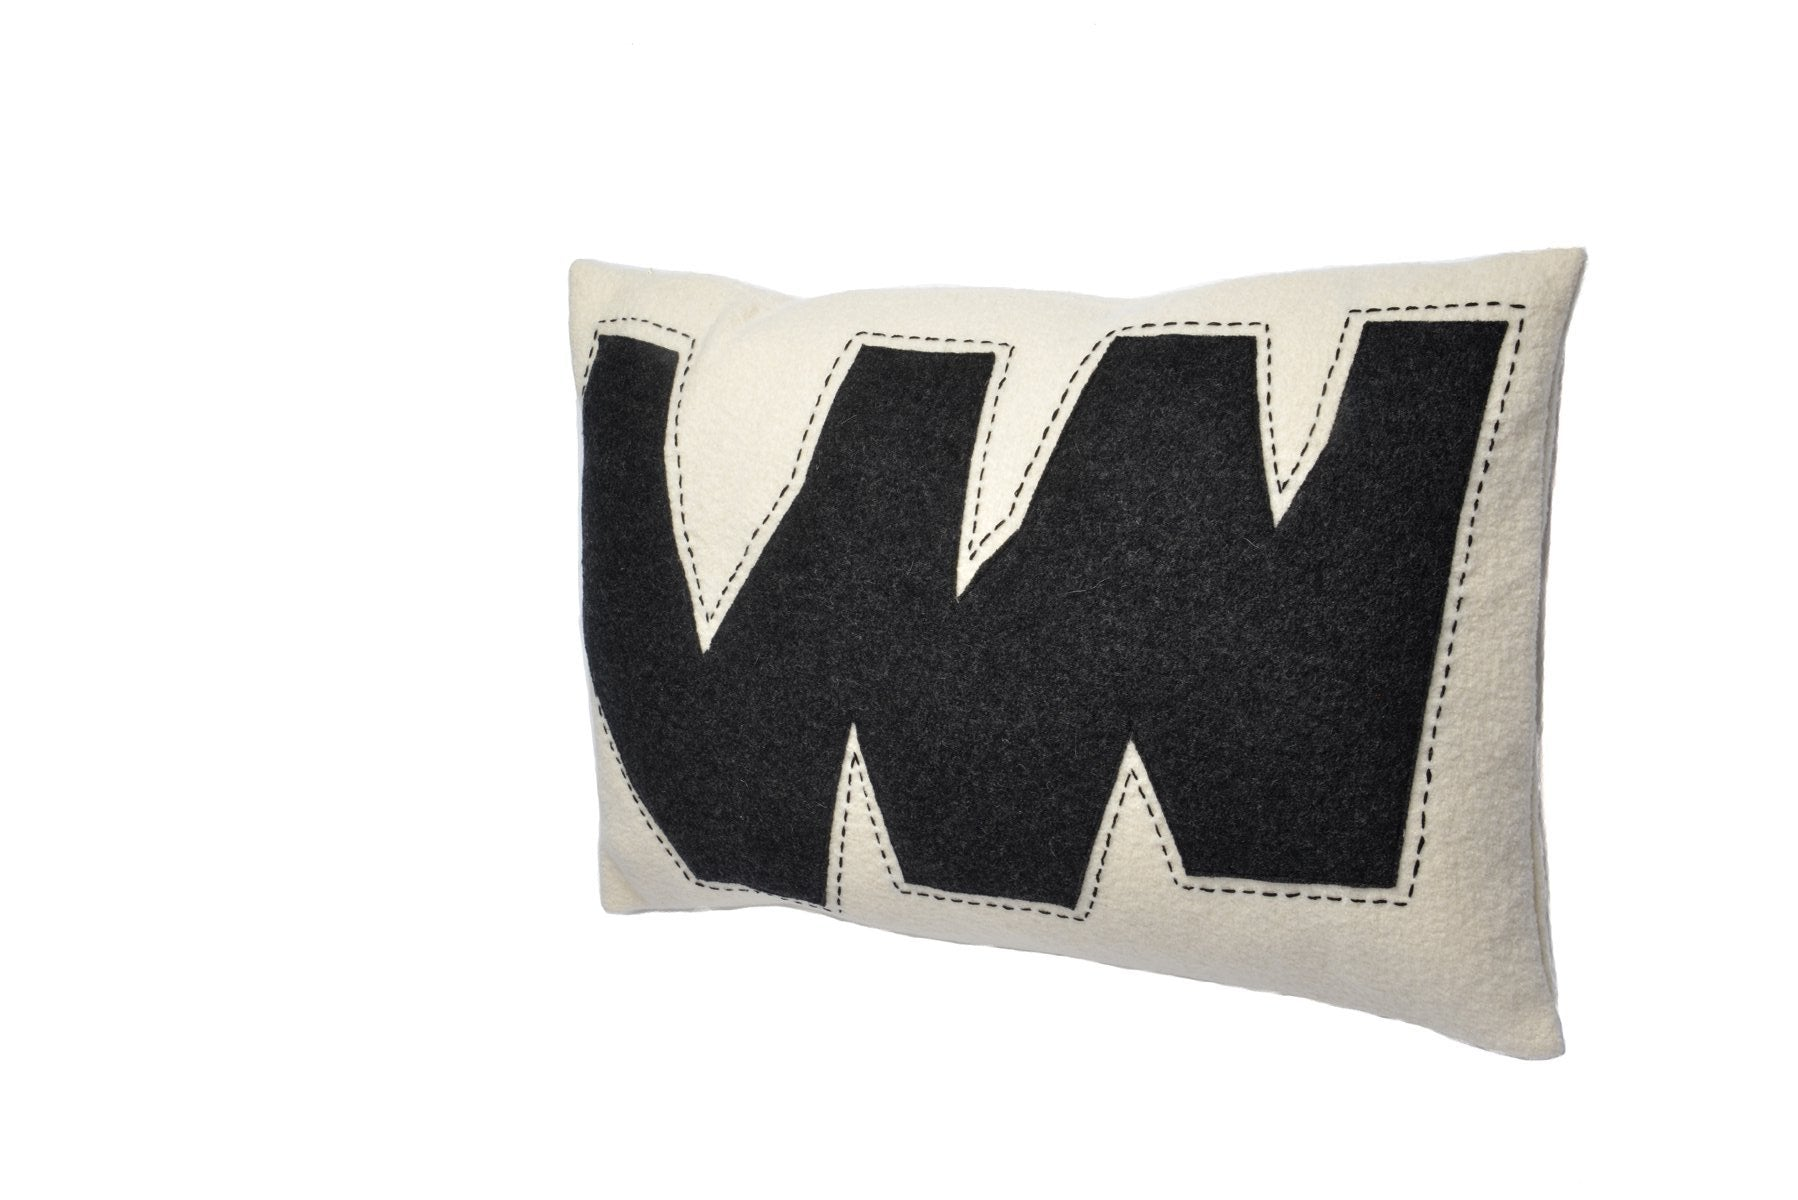 Matilda - Wool Applique Cushion in Black and White